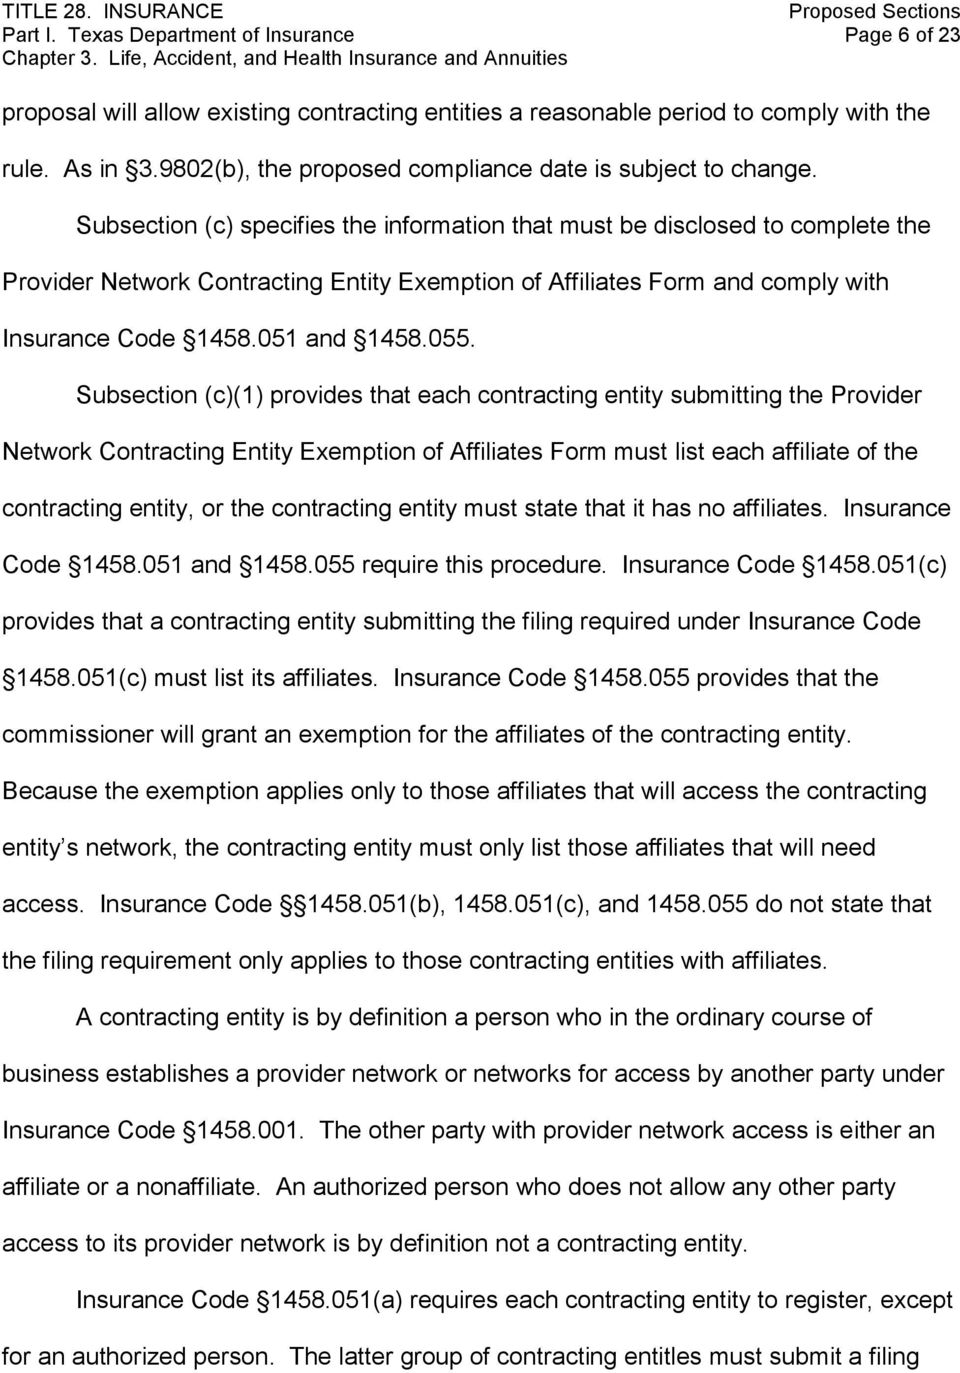 Subsection (c) specifies the information that must be disclosed to complete the Provider Network Contracting Entity Exemption of Affiliates Form and comply with Insurance Code 1458.051 and 1458.055.